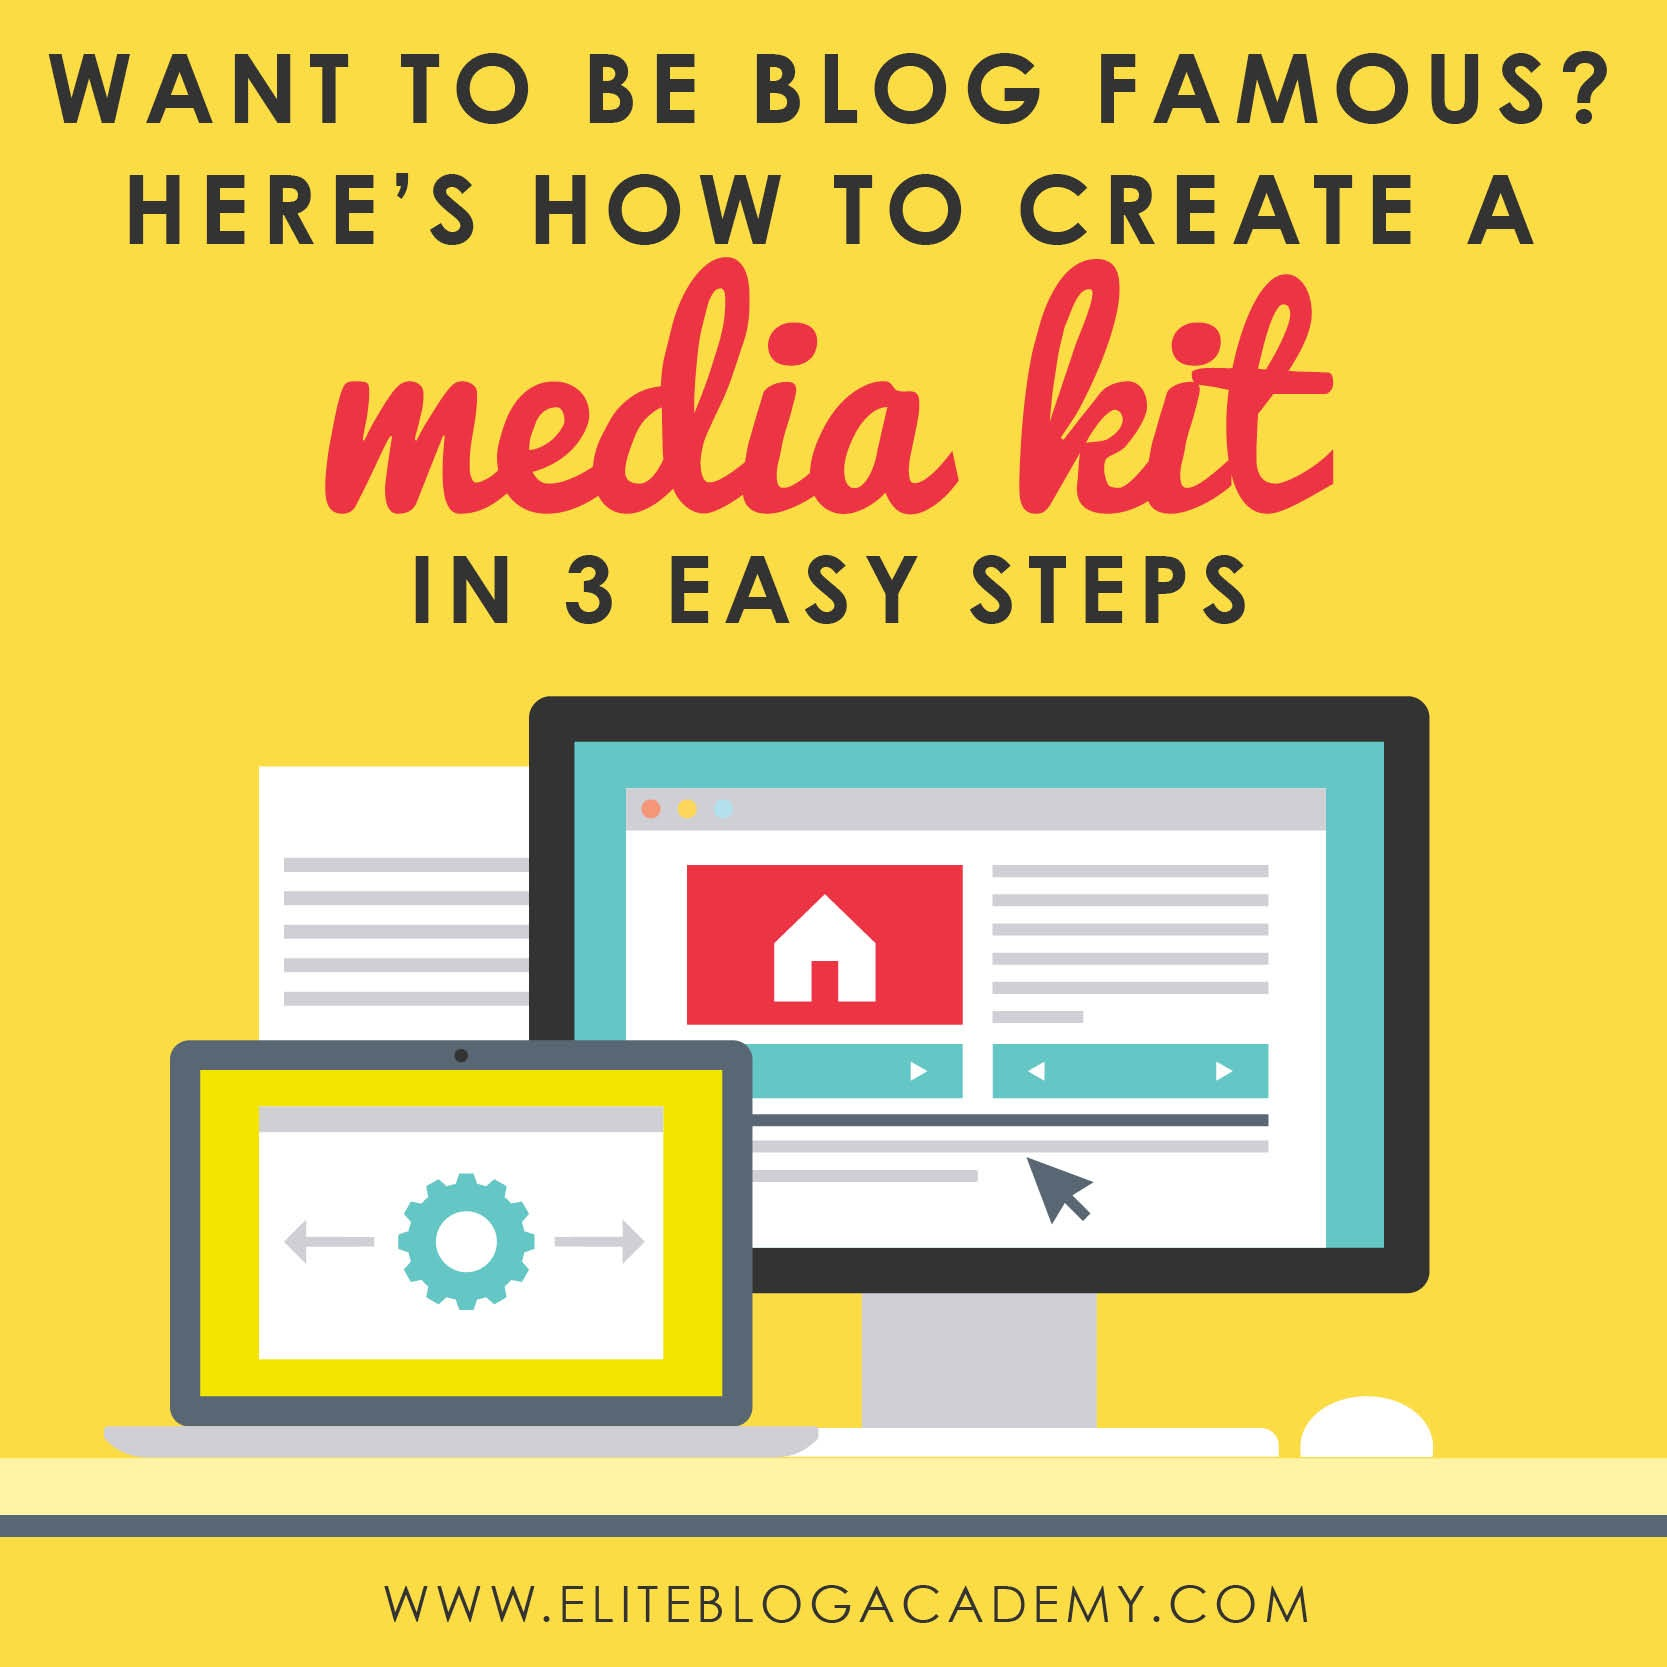 Ready to start treating your blog as business and begin working with brands? Having a media kit may seem overwhelming, here are 3 simple ways to create a media kit that will WOW prospective brands!